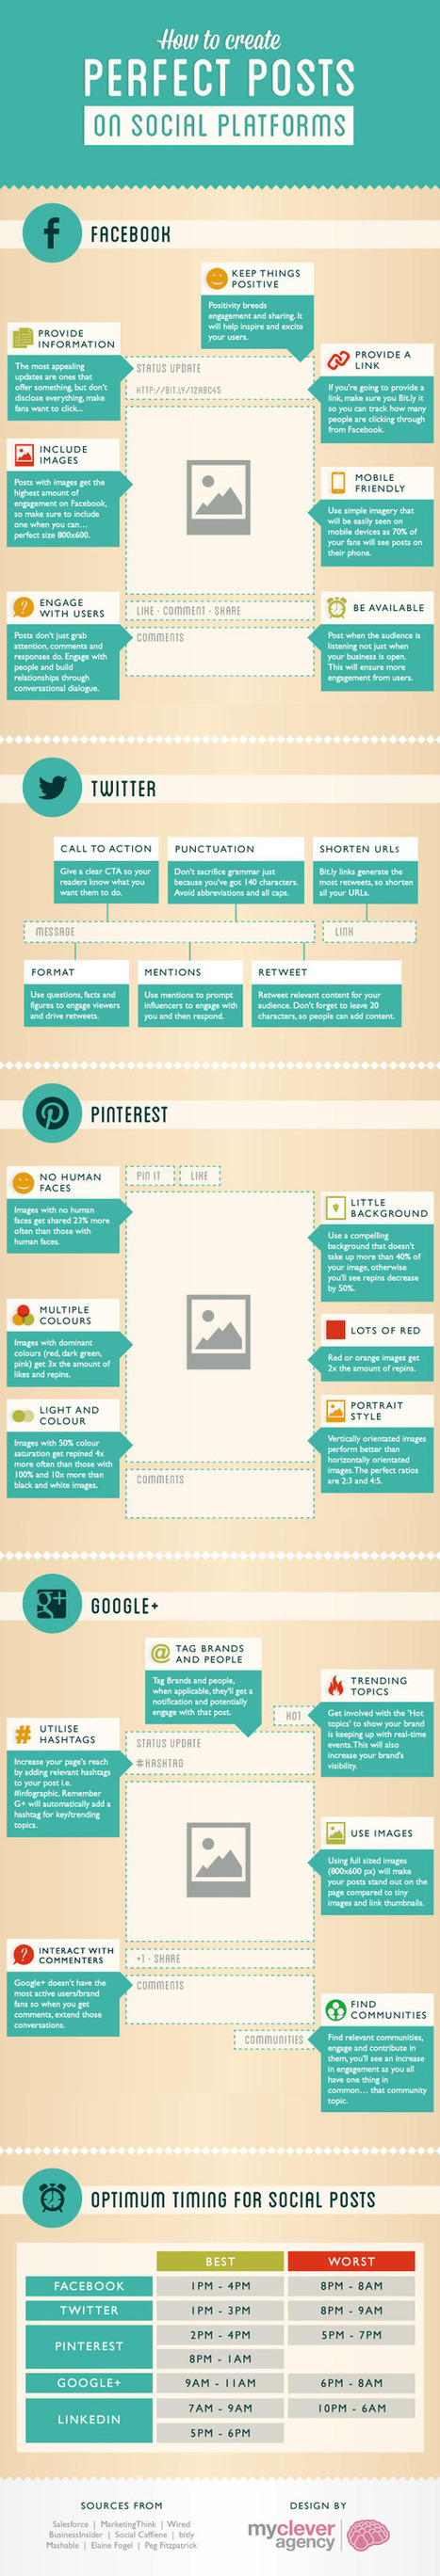 How to Create Perfect Posts on Social Platforms [INFOGRAPHIC] | Social Media | Scoop.it